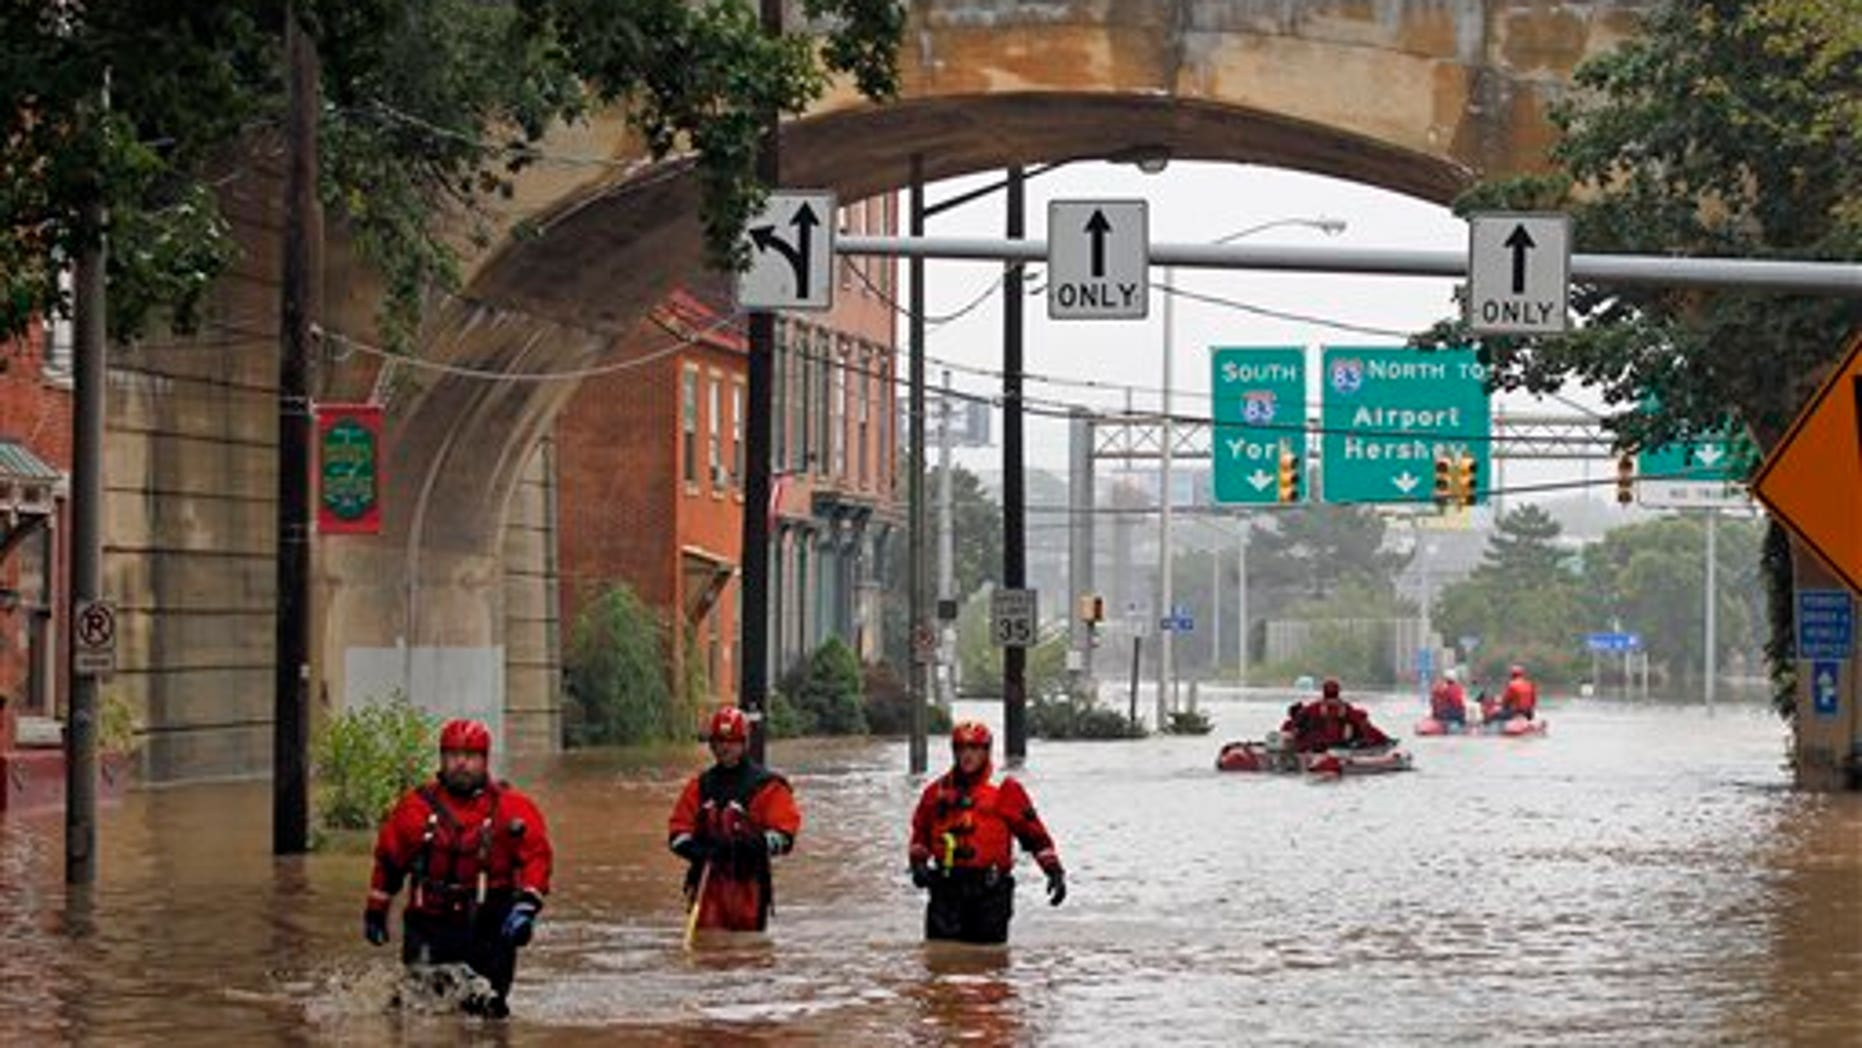 Sept. 9: Members of the Harrisburg River Rescue unit walk out of the water after launching a boat to take Mayor Linda Thompson to the flooded Shipoke area during flooding caused by rainfall from the remnants of Tropical Storm Lee, in Harrisburg, Pa.